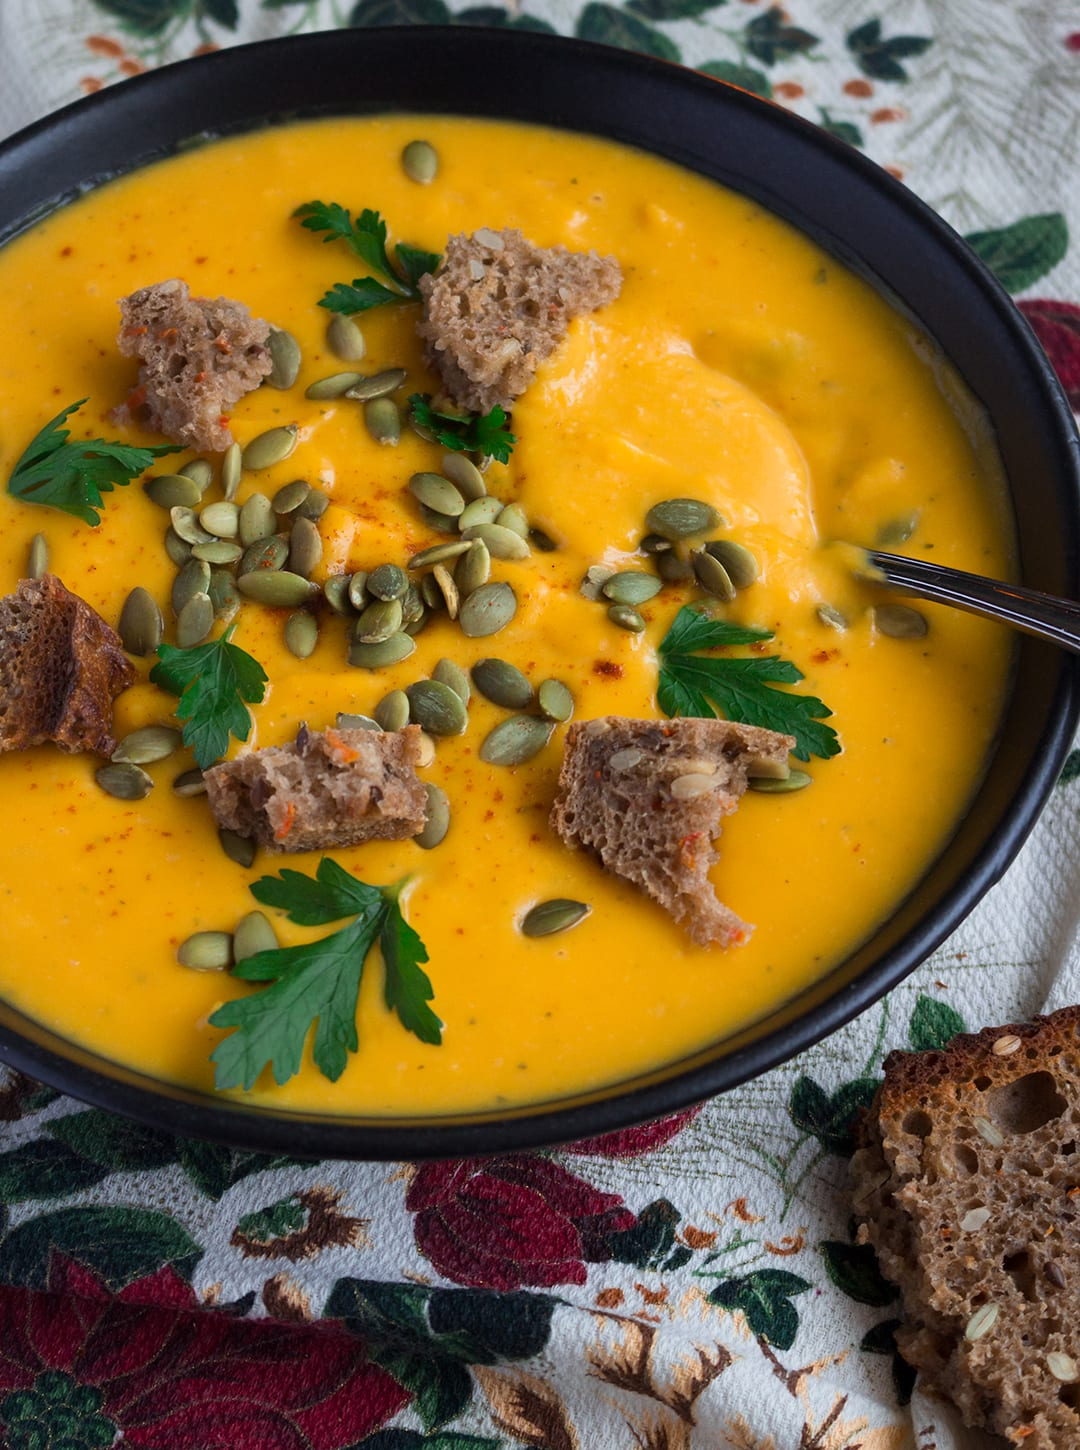 Vegan Creamy Roasted Butternut Squash Soup - delicious and easy fall recipe and the ultime comfort food! It's freezer friendly so you can double the recipe to enjoy it later.   thehealthfulideas.com